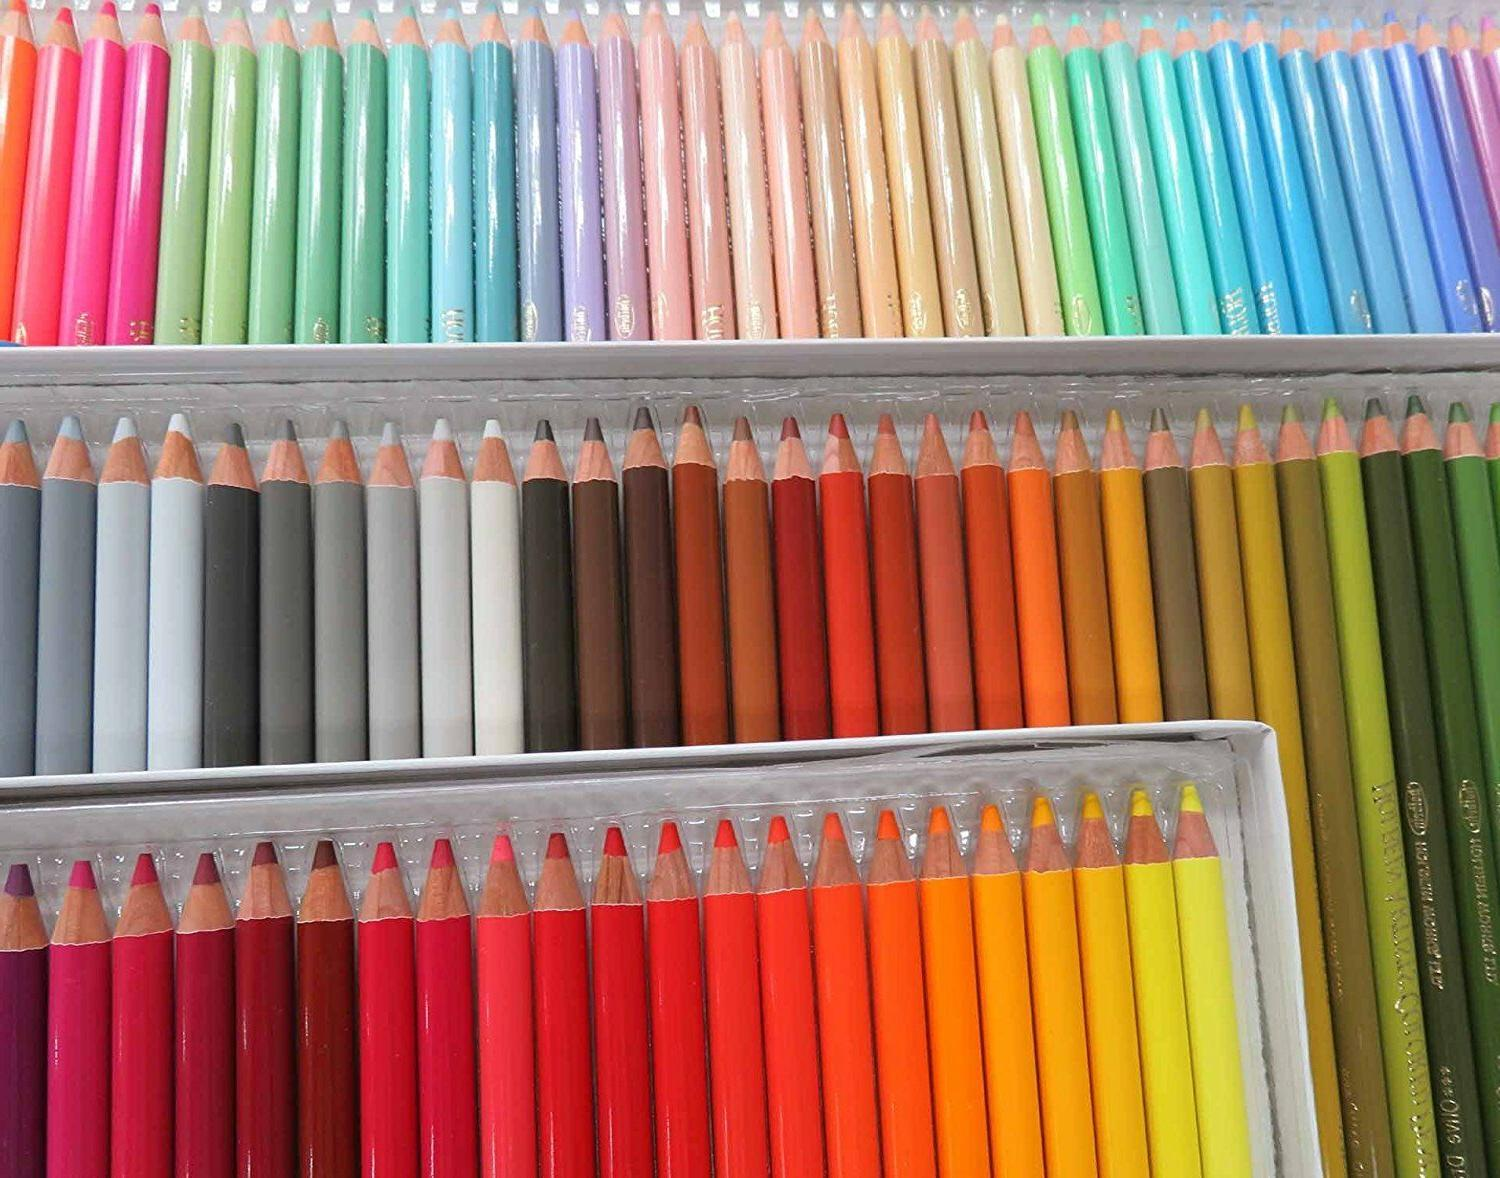 New Colored Pencil 100 Colors Supplies